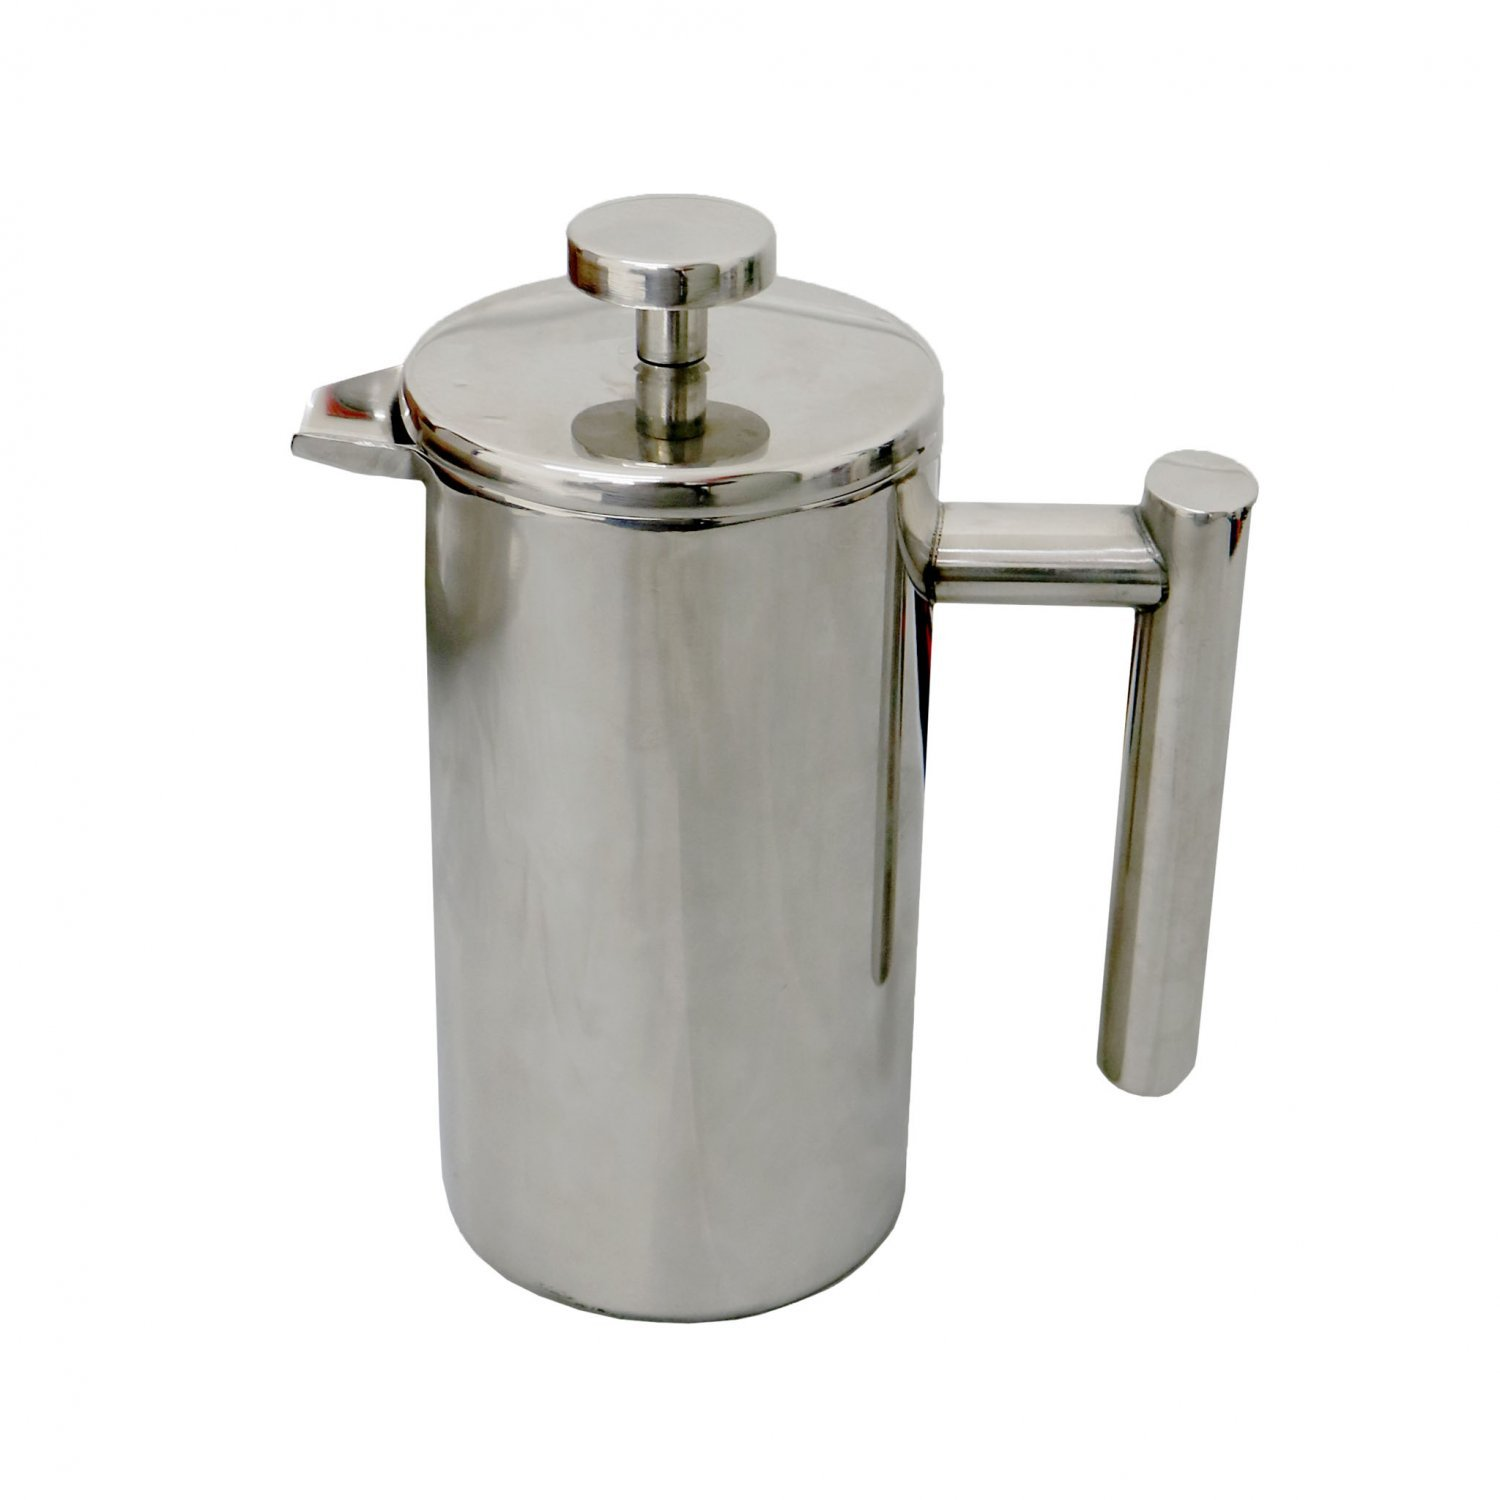 3 Cup 350ml Stainless Steel Cafetiere French Press Coffee